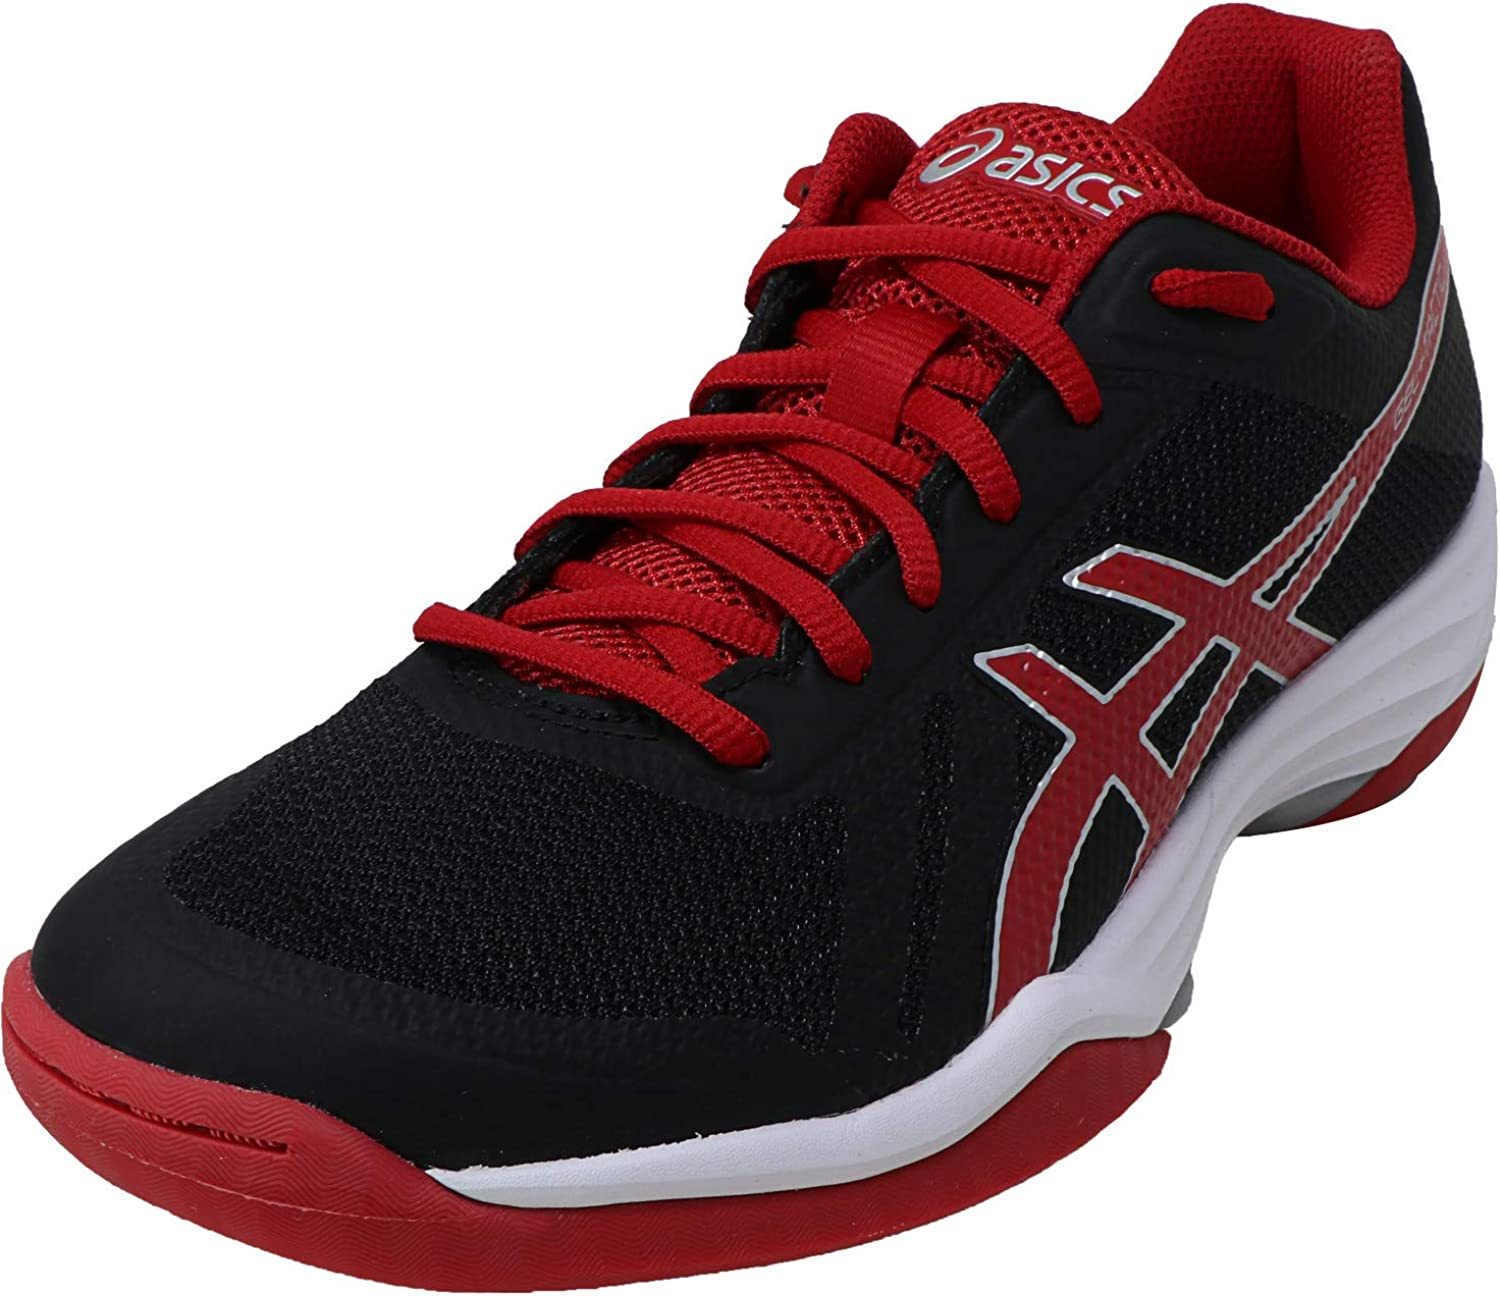 Gel-Tactic 2 Volleyball Shoes